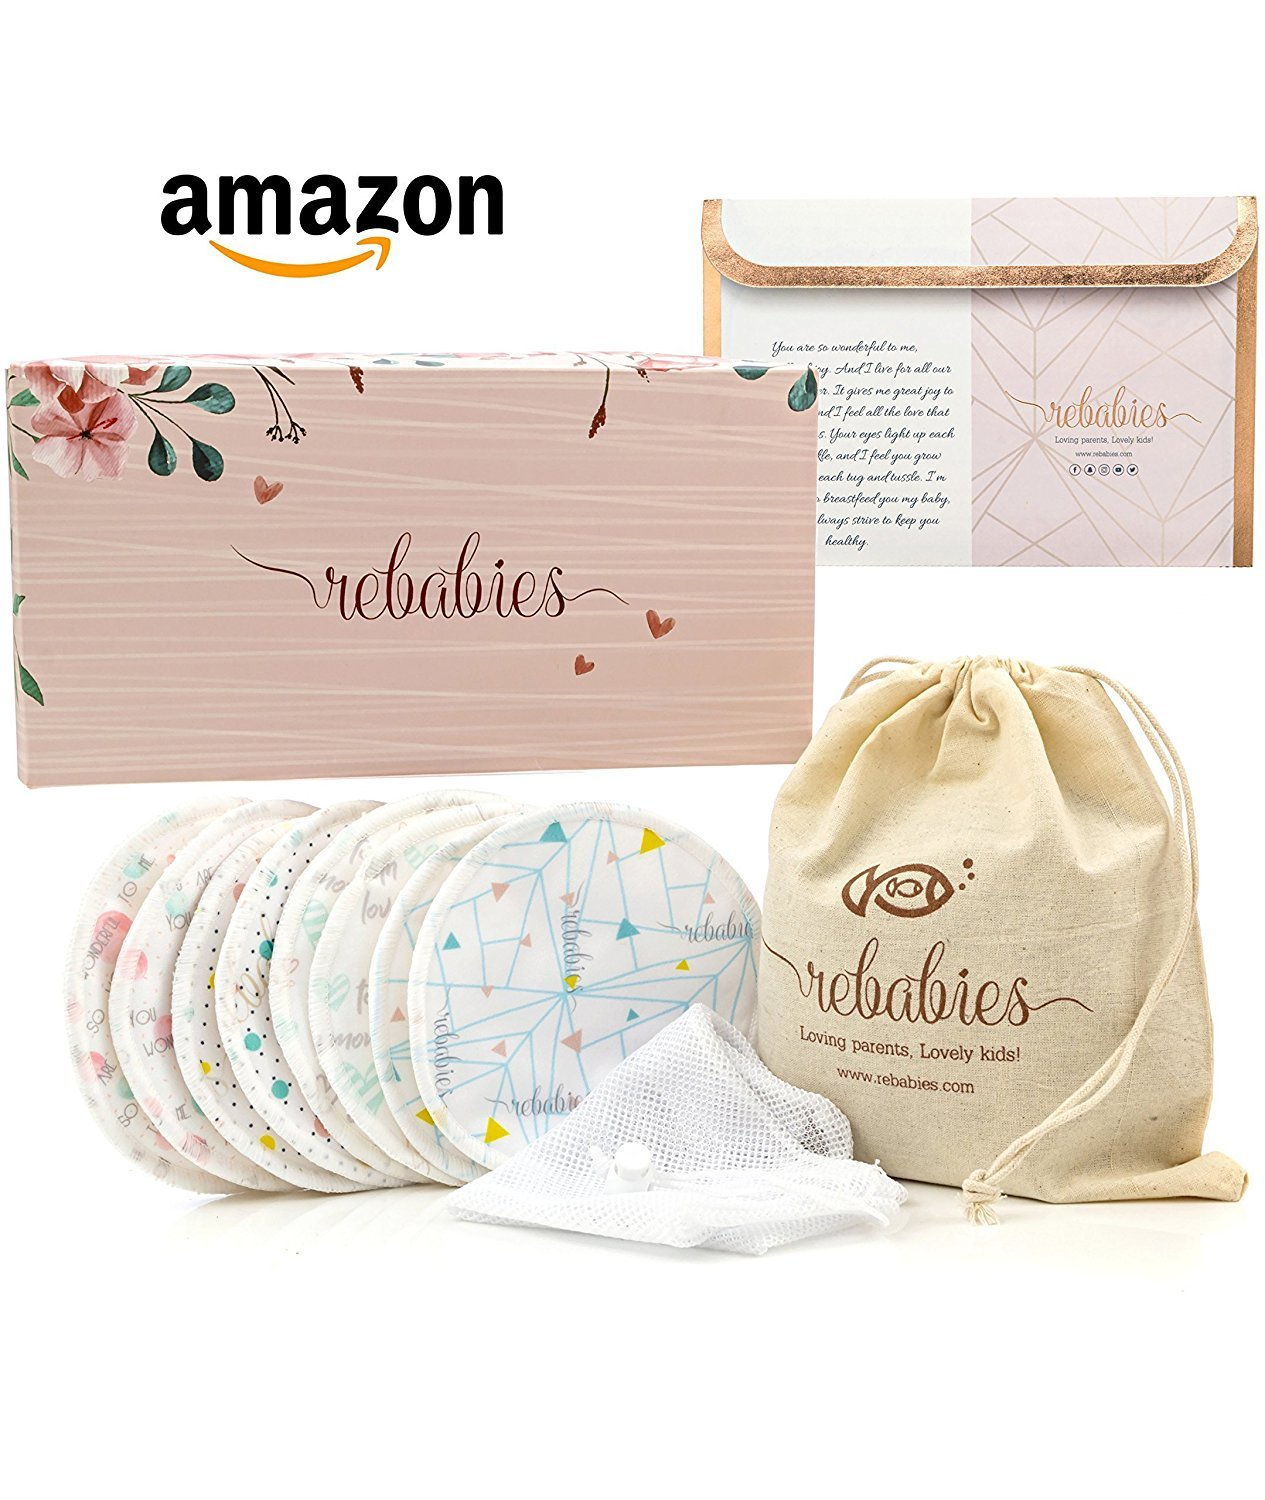 Best Nursing Pads for Breastfeeding Moms, Eco-Friendly Organic Bamboo No-Leak Bra Pads, Reusable, Washable, & Super Absorbent, Includes 4 Overnight & 4 Regular Pads, Awesome Baby Shower Gift (8 Pack)